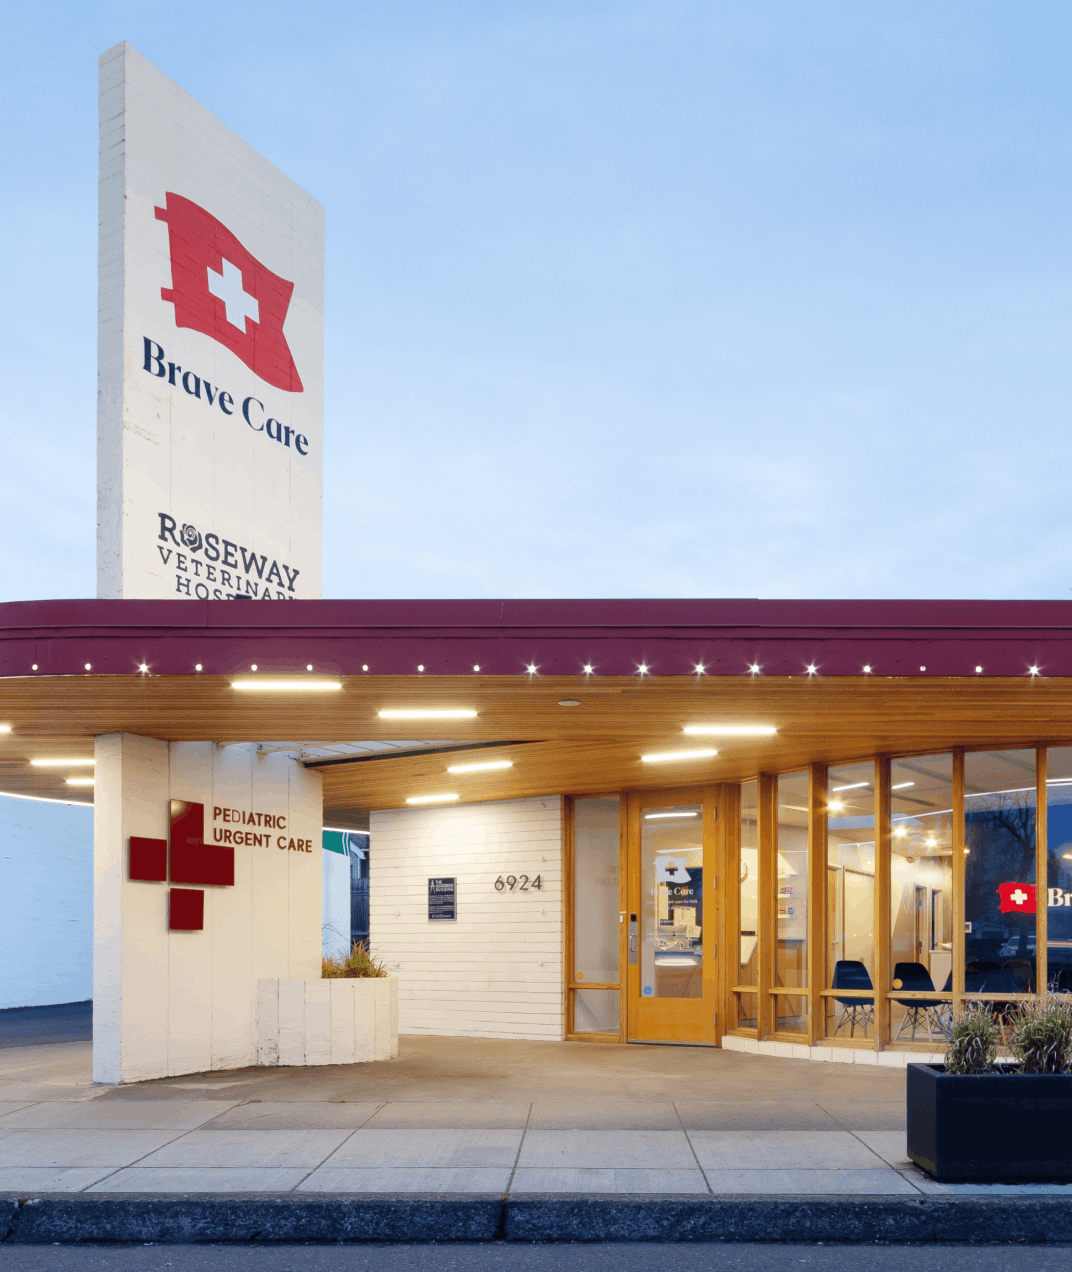 View of the NE Portland Clinic during sunset